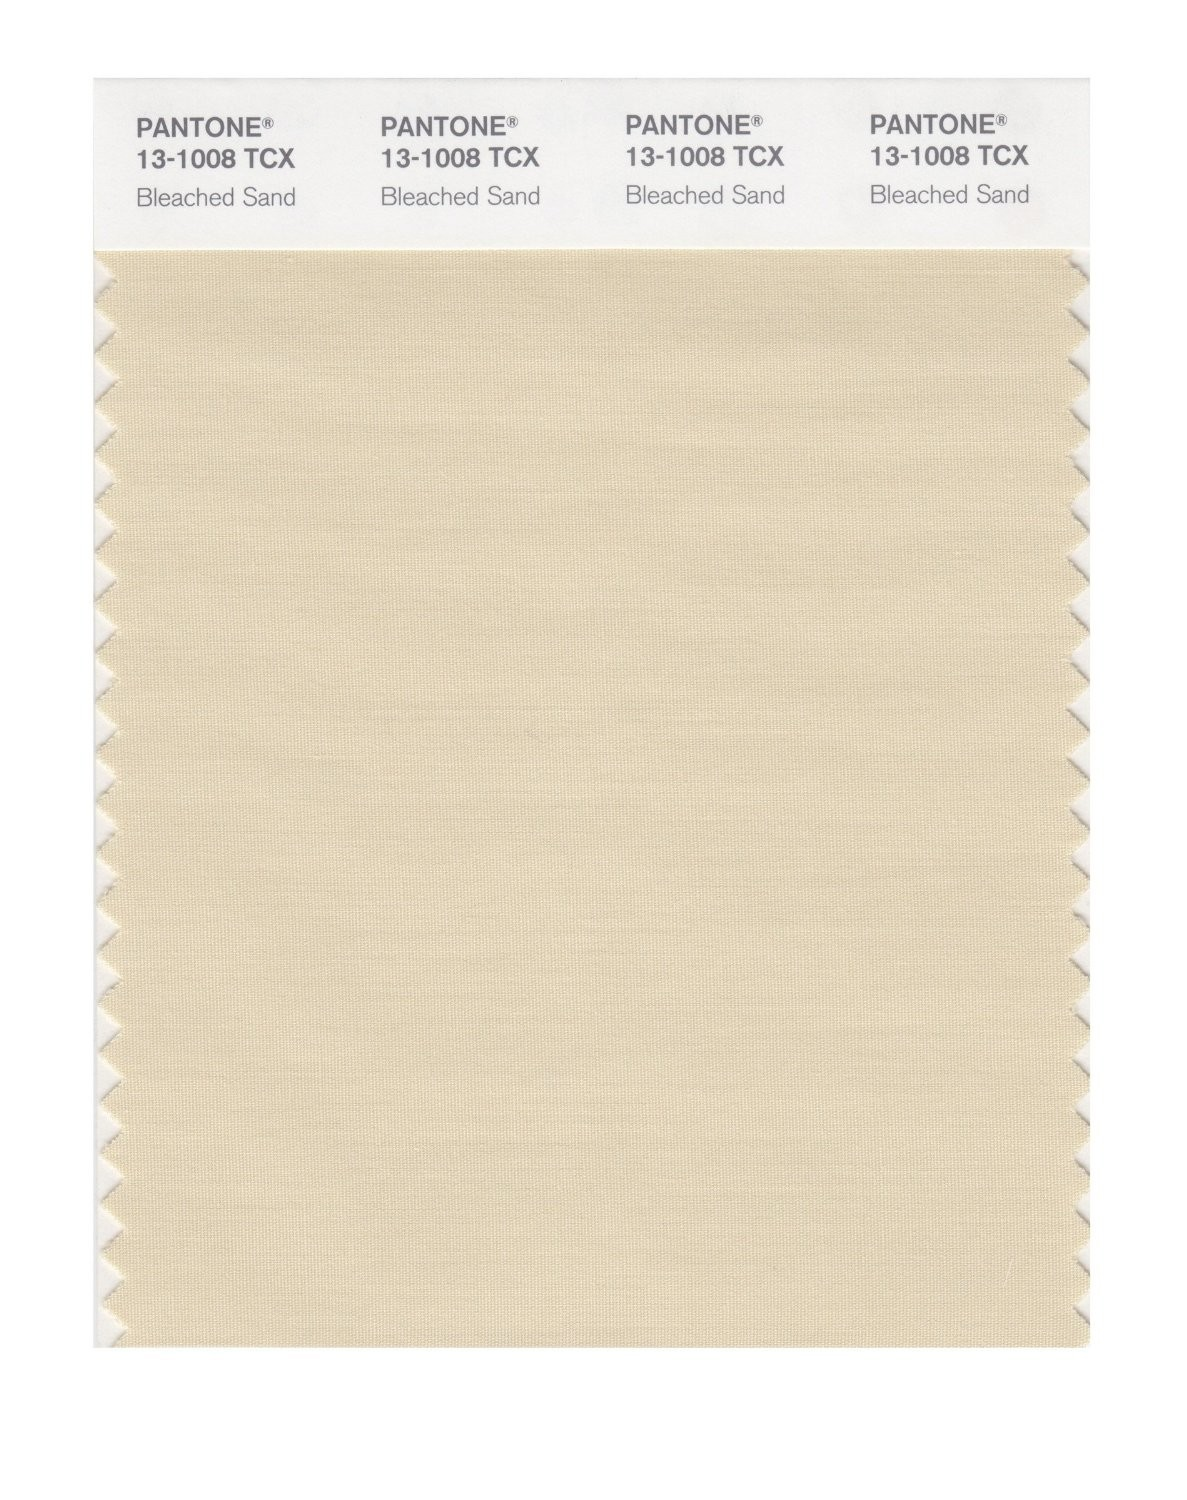 Pantone 13-1008 TCX Swatch Card Bleached Sand